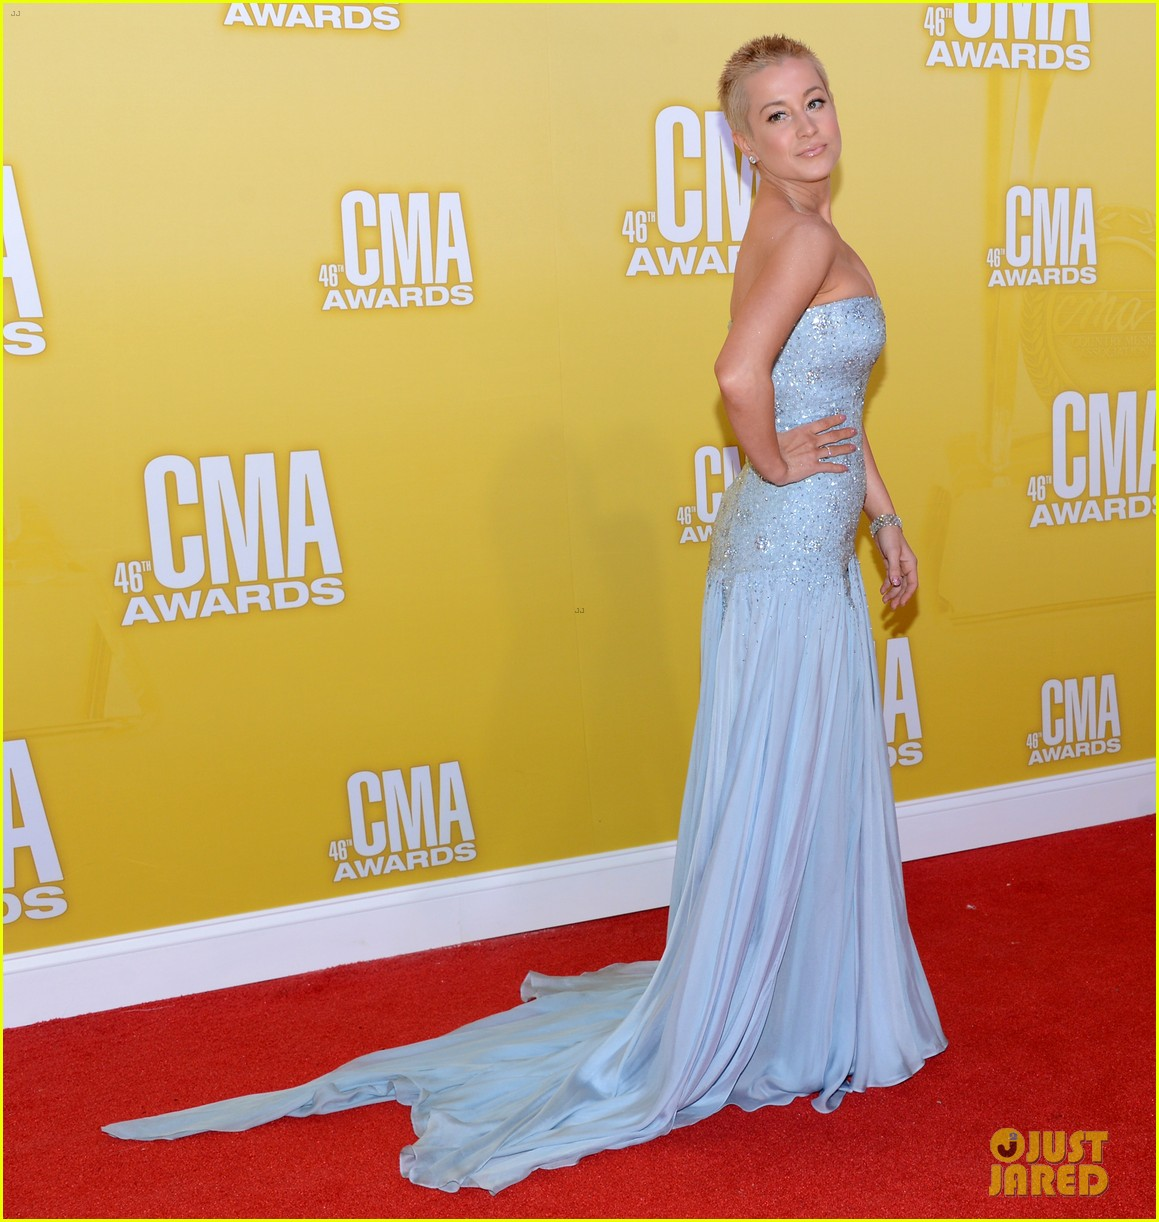 Kellie Pickler CMA Awards 2012 Red Carpet Photo 2749675